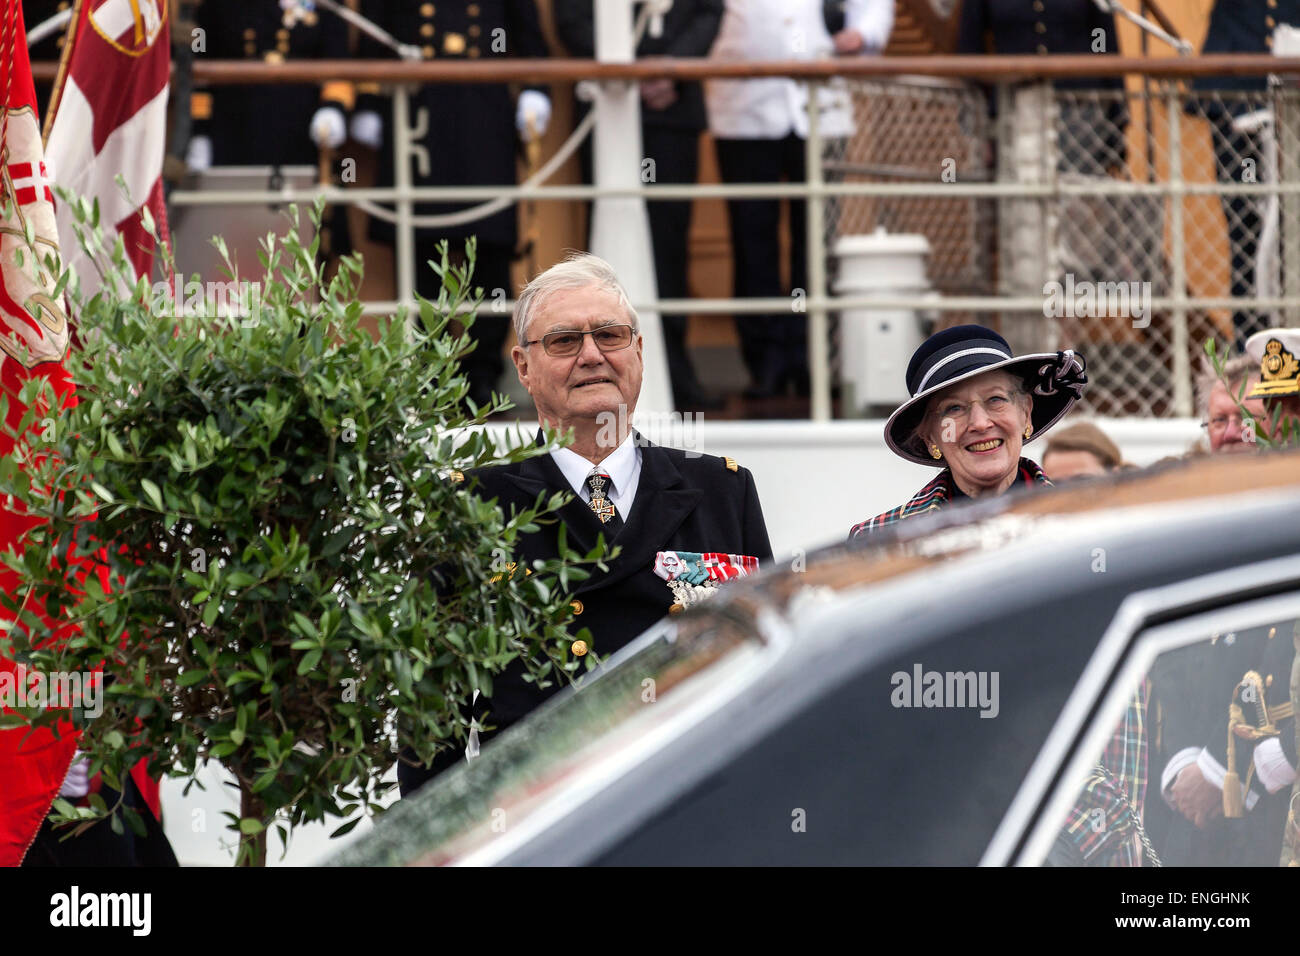 Helsingore, Denmark. 5th May, 2015. Prince Consort Henrik and H. M. Queen Margrethe pictured at their visit to Helsingore - Stock Image